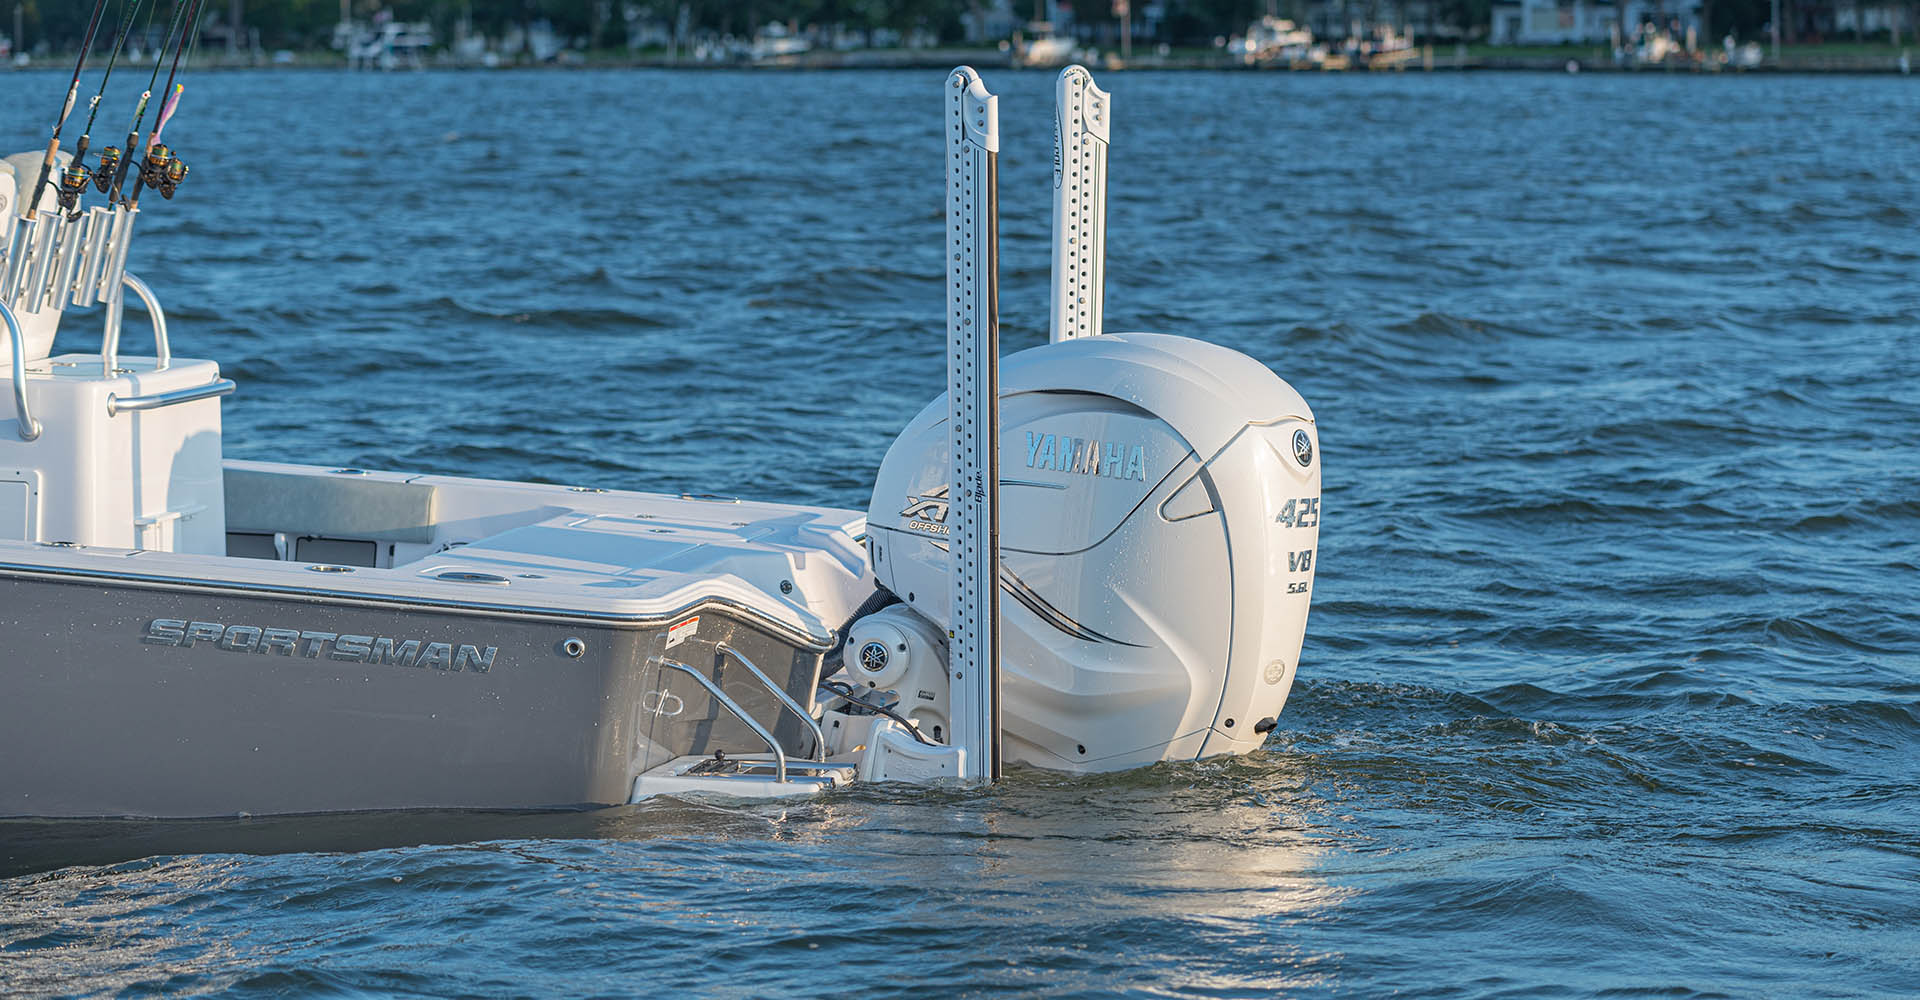 Main image of the Masters 267OE Bay Boat.